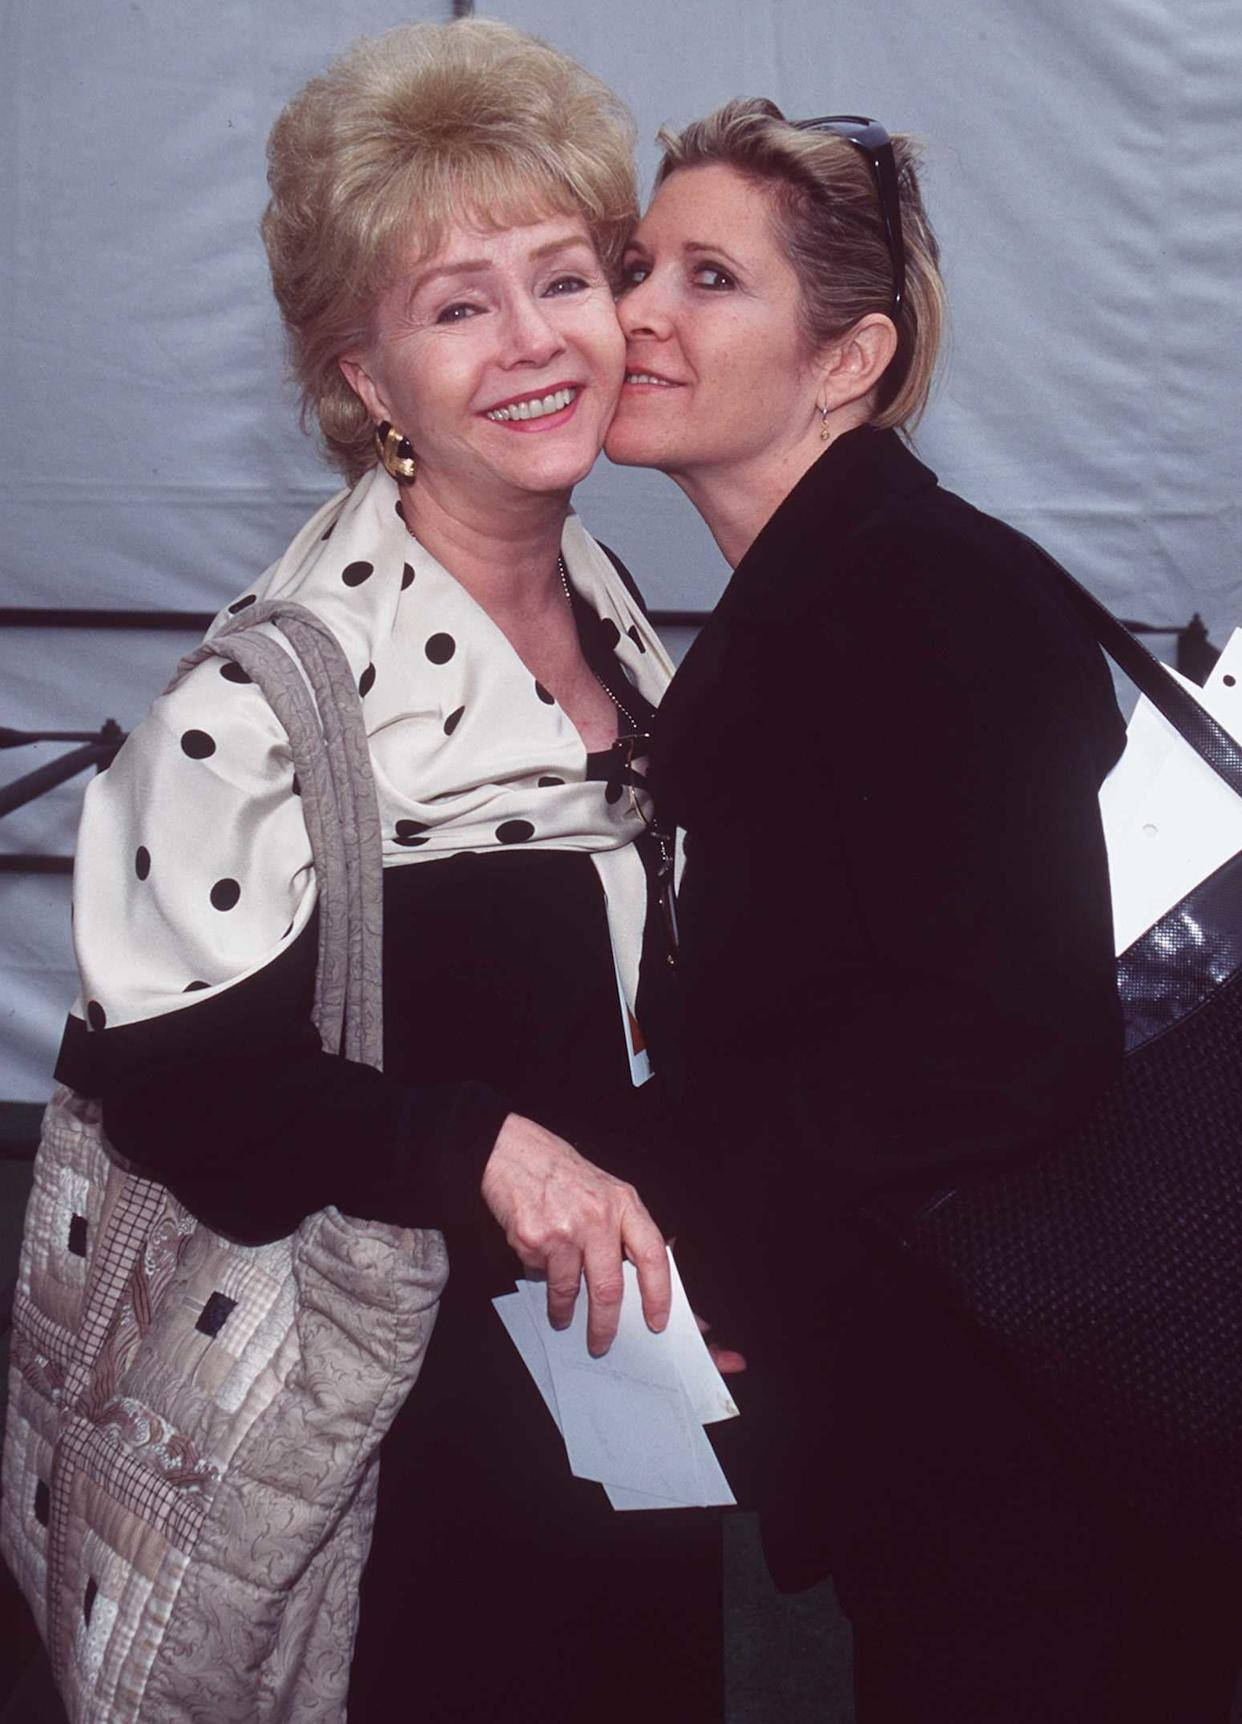 Debbie Reynolds with Carrie Fisher backstageat the 1997 Academy Awards.